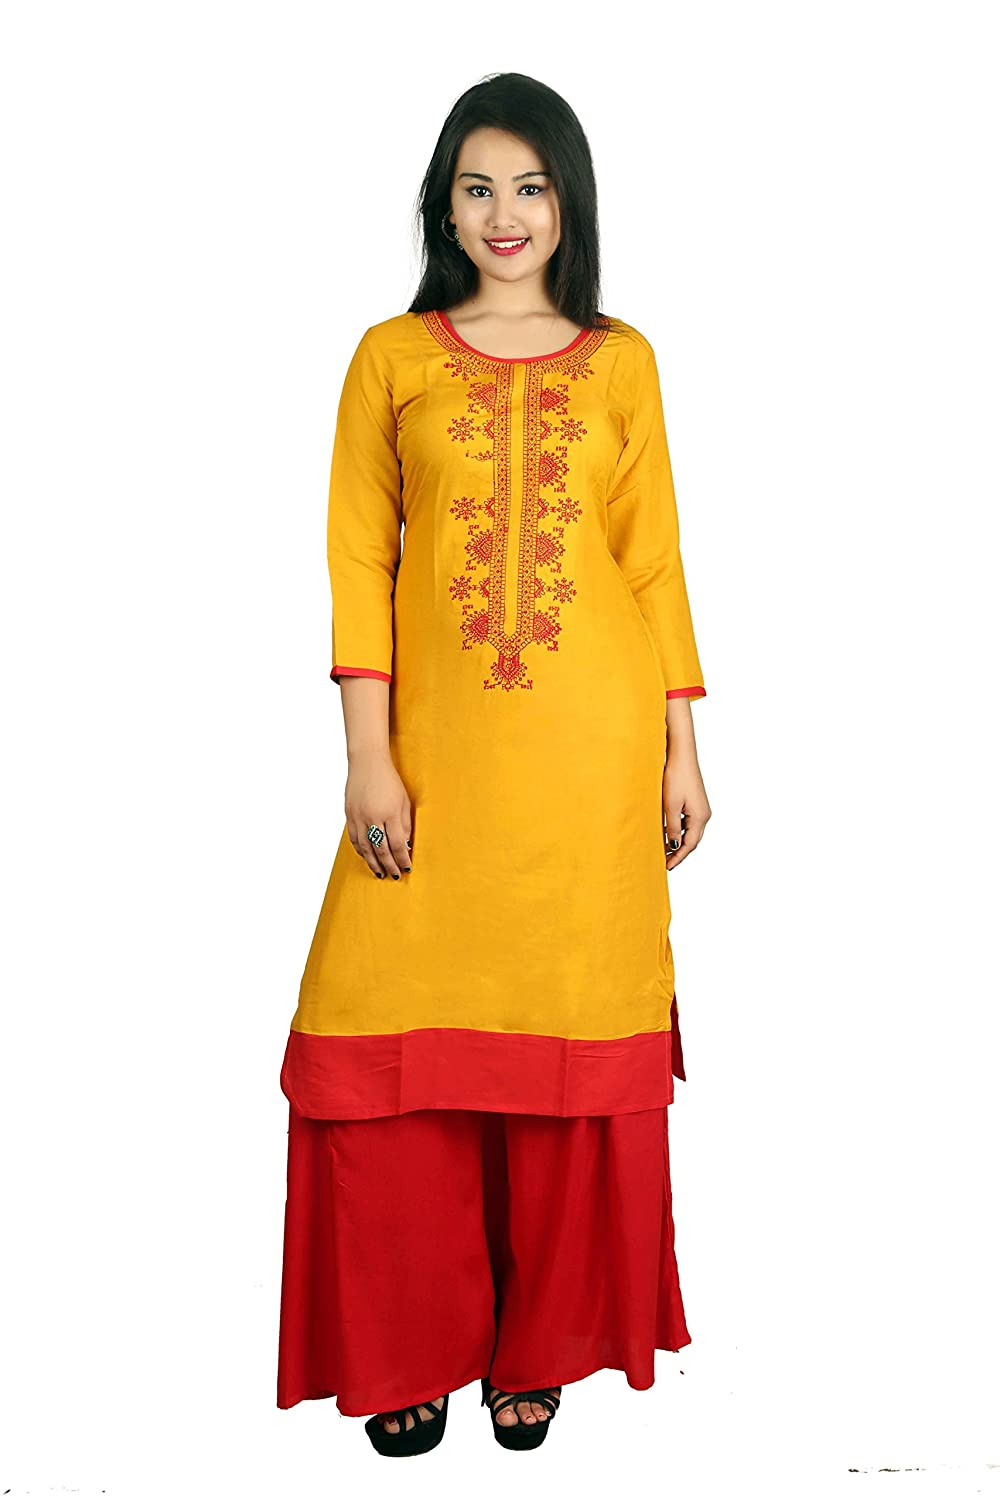 Yellow Embroidered 3/4 Sleeve Cotton Women's Kurta and Palazzo Set Indian Handicrfats Export D12-Mustured-Red-S